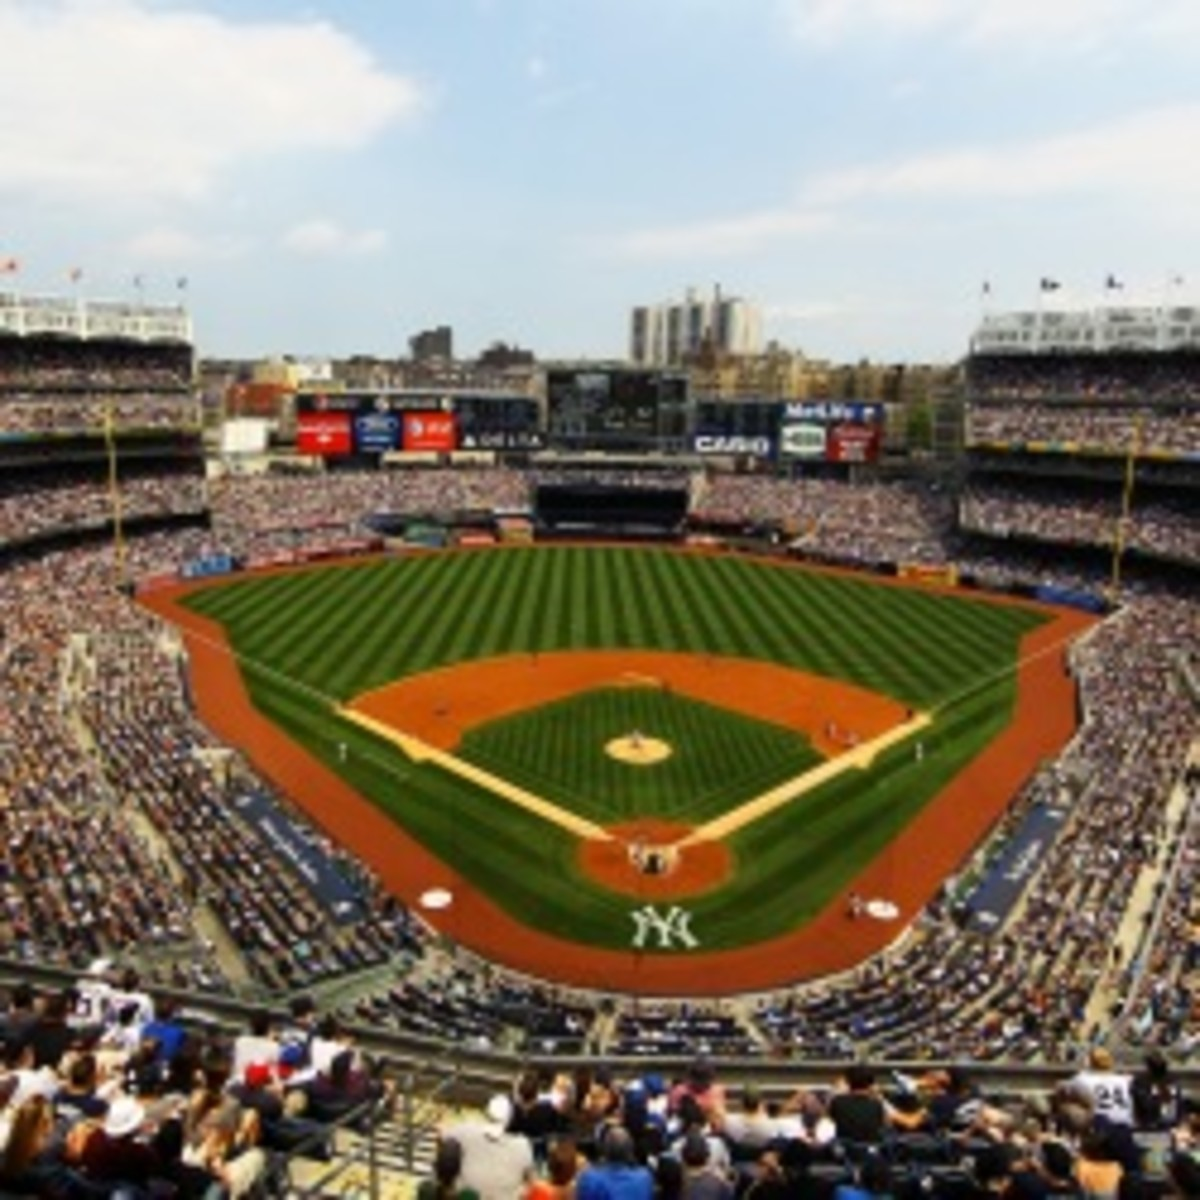 Yankee Stadium will reportedly host two hockey games next season. (Al Bello/Getty Images)